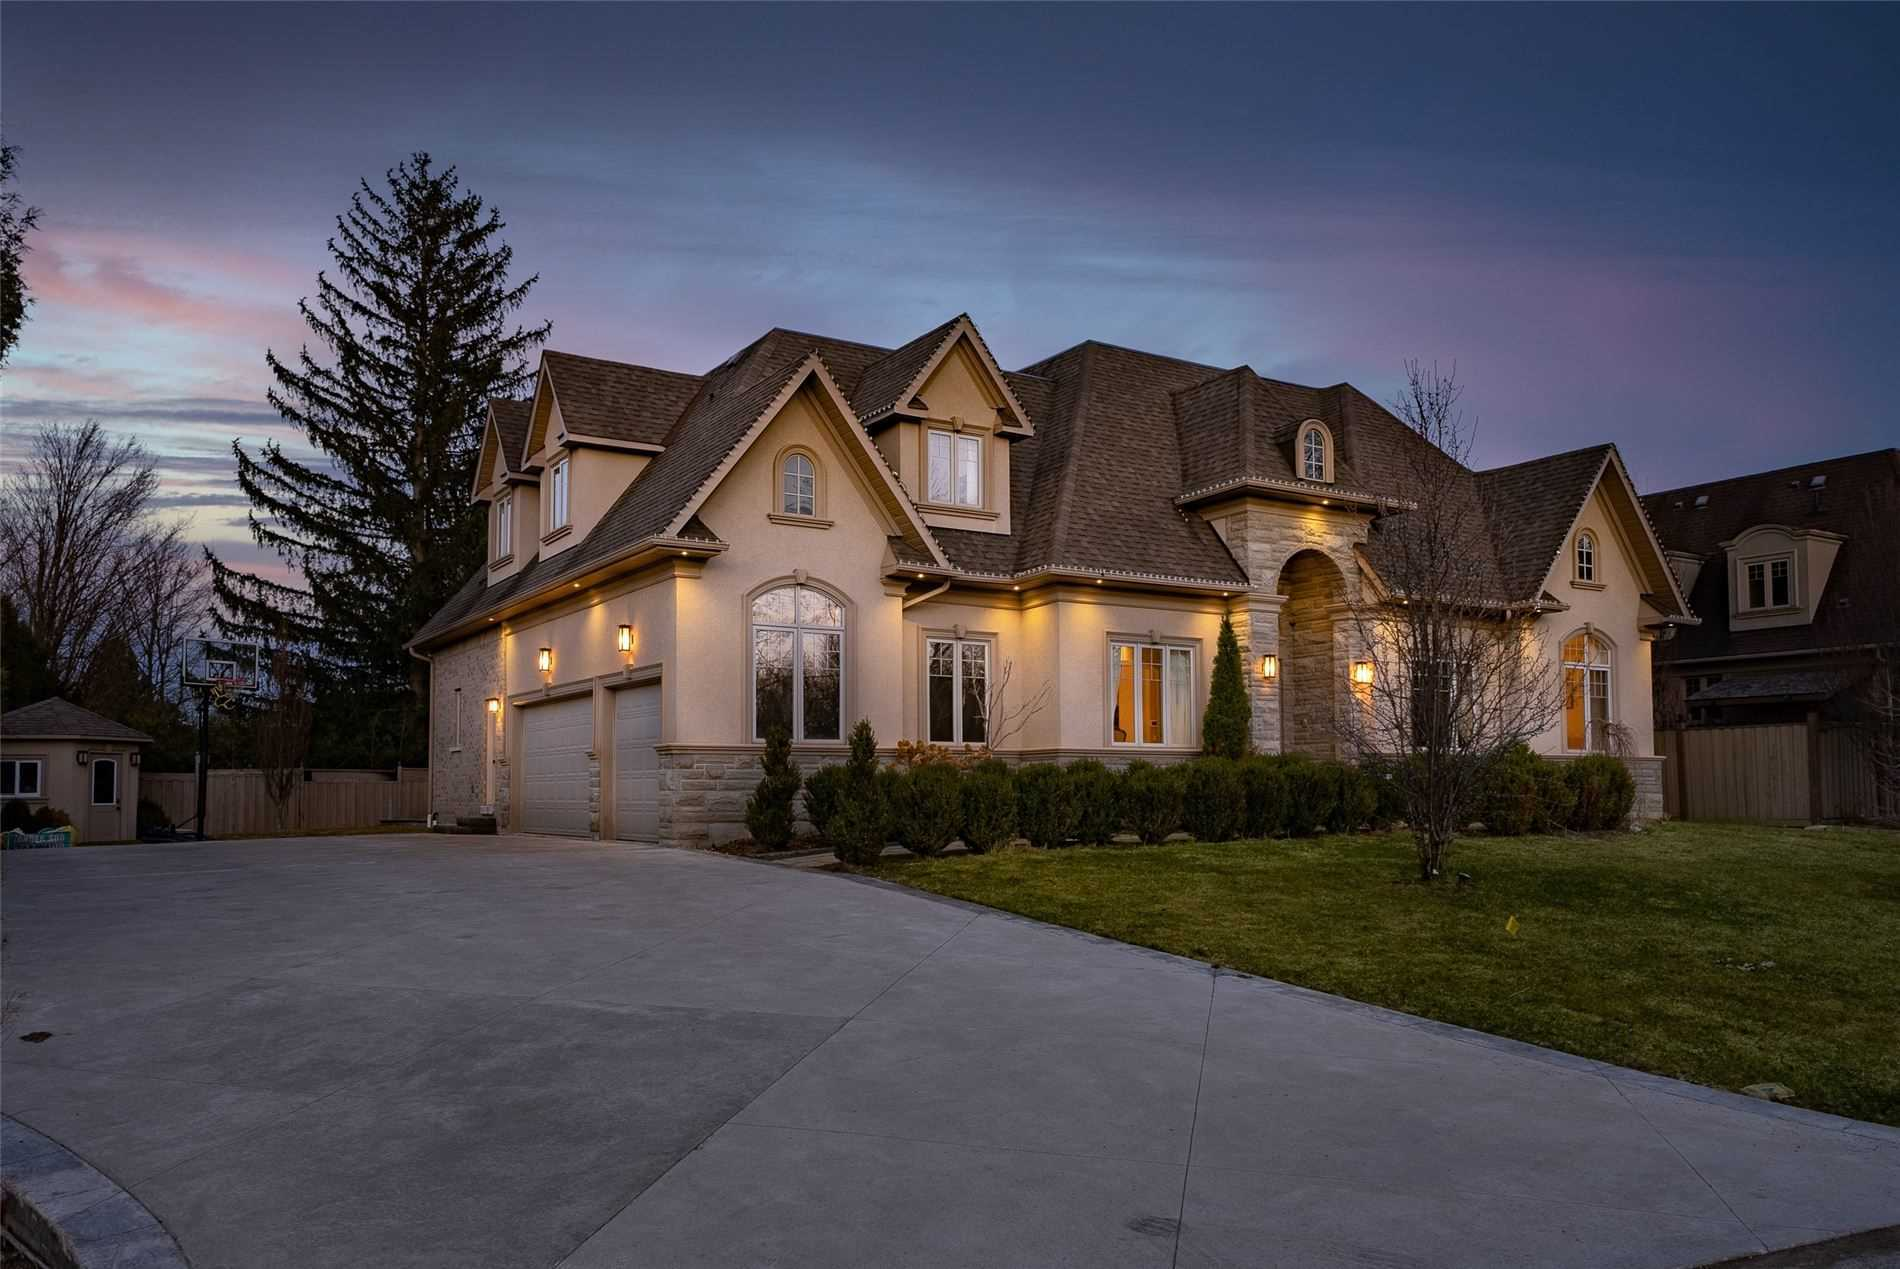 7 Blyth St, Richmond Hill, Ontario L4C3C7, 5 Bedrooms Bedrooms, 11 Rooms Rooms,6 BathroomsBathrooms,Detached,For Sale,Blyth,N5148563